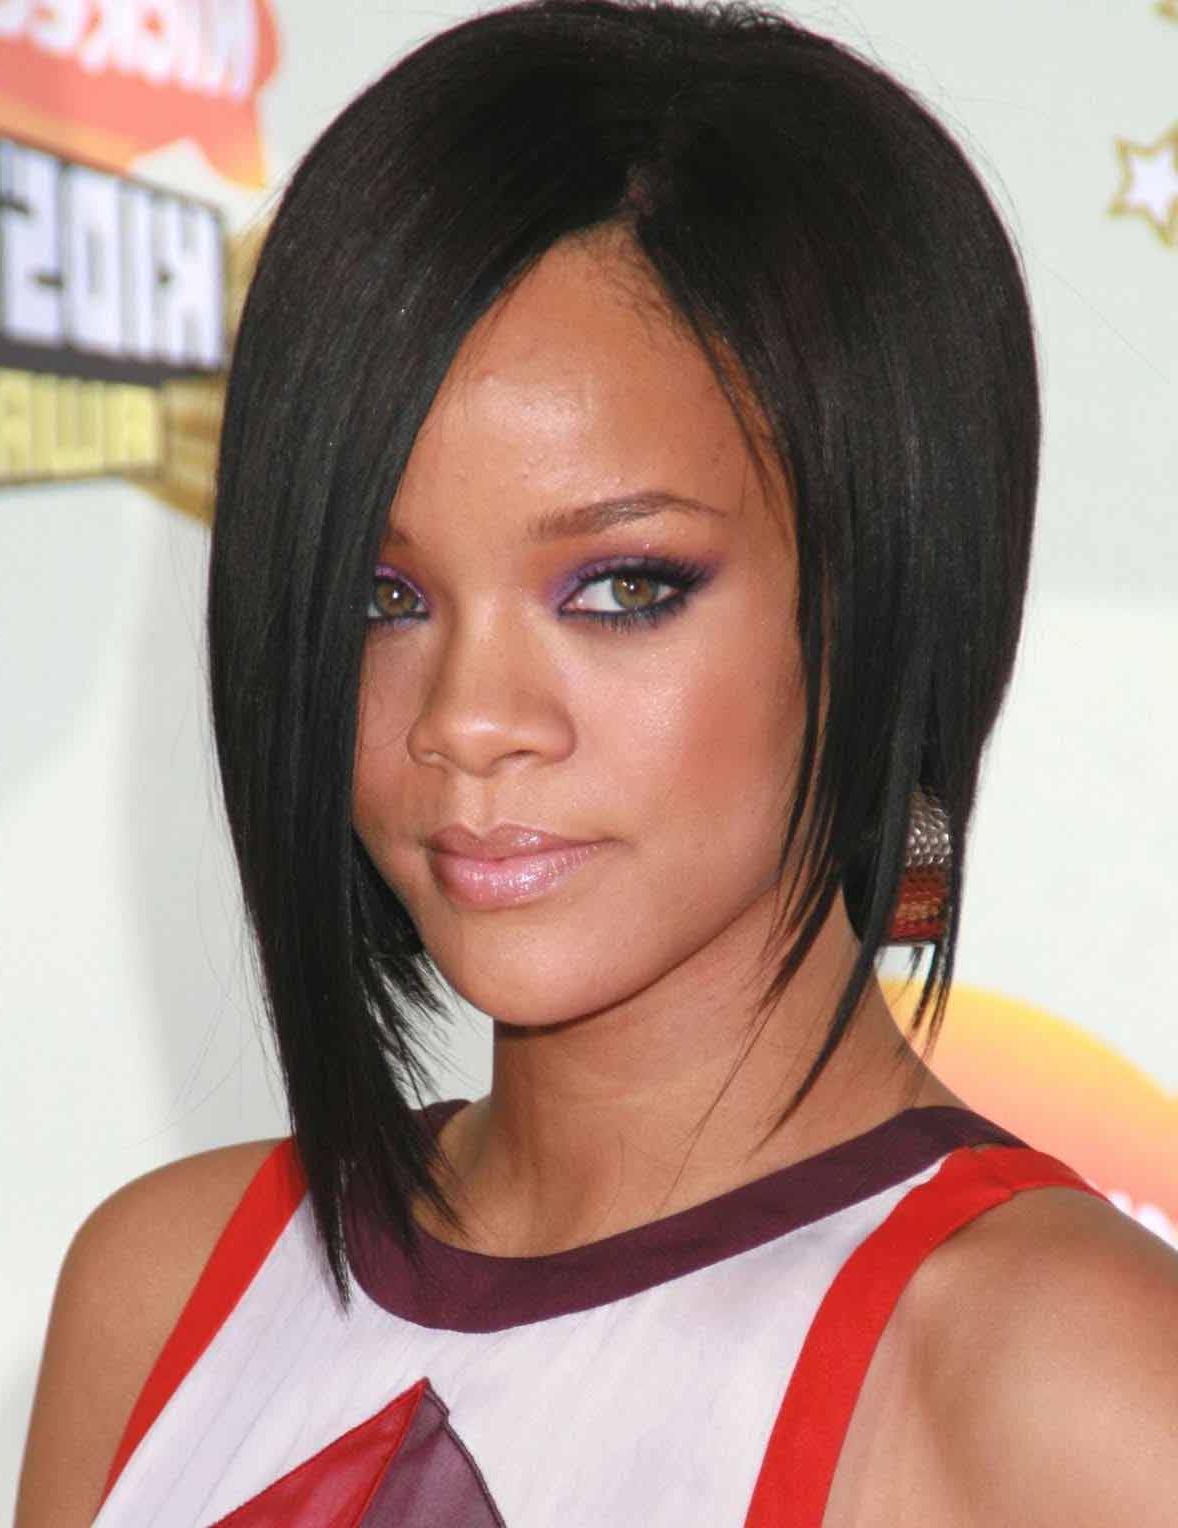 Most Up To Date Medium Hairstyles For Women With Big Foreheads Intended For Best Hairstyles For Big Foreheads (View 13 of 20)